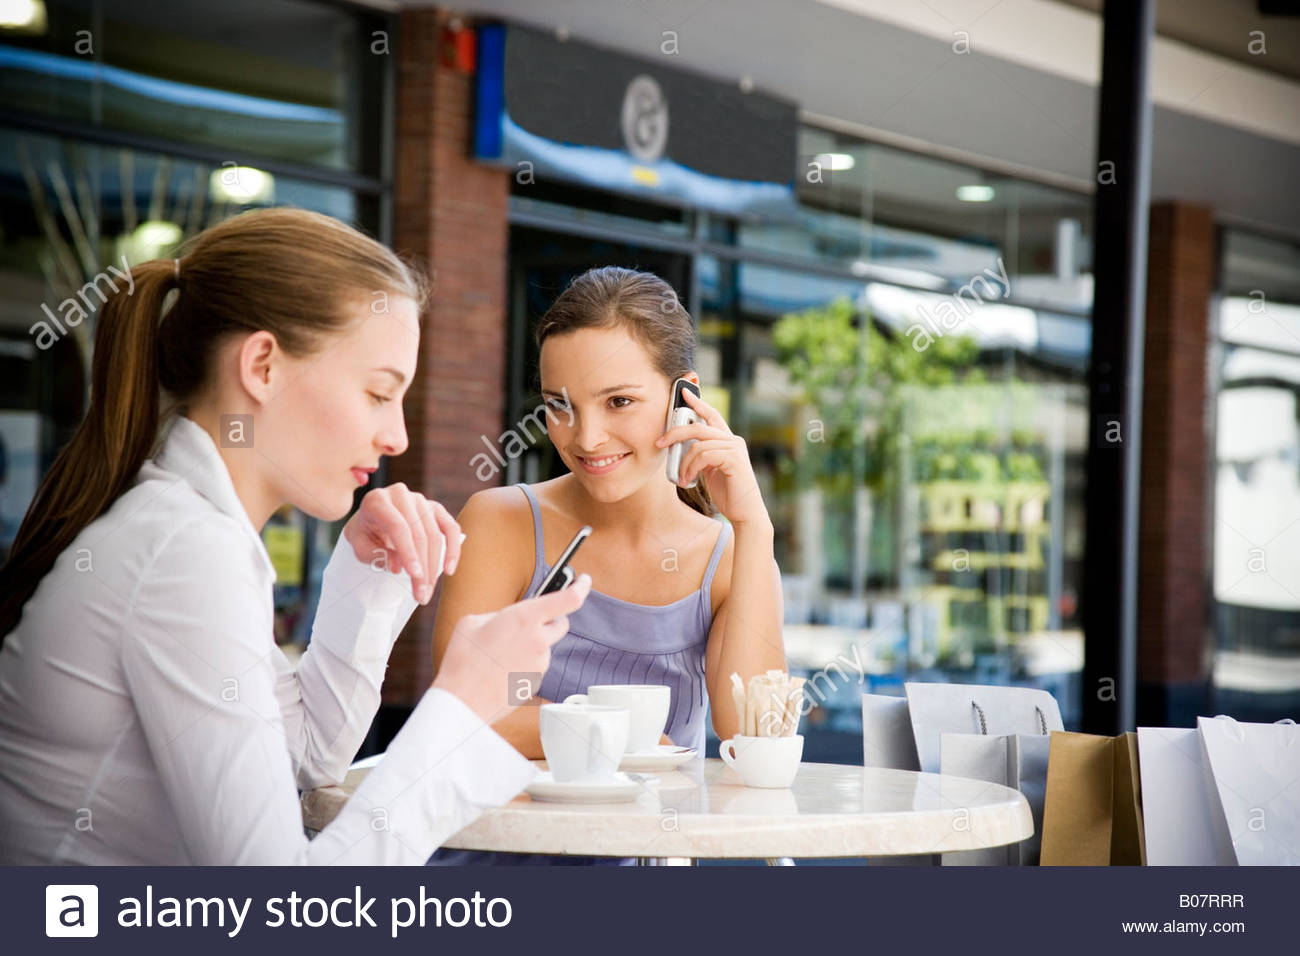 Two women on their mobile phones at a pavement cafe - Stock Image